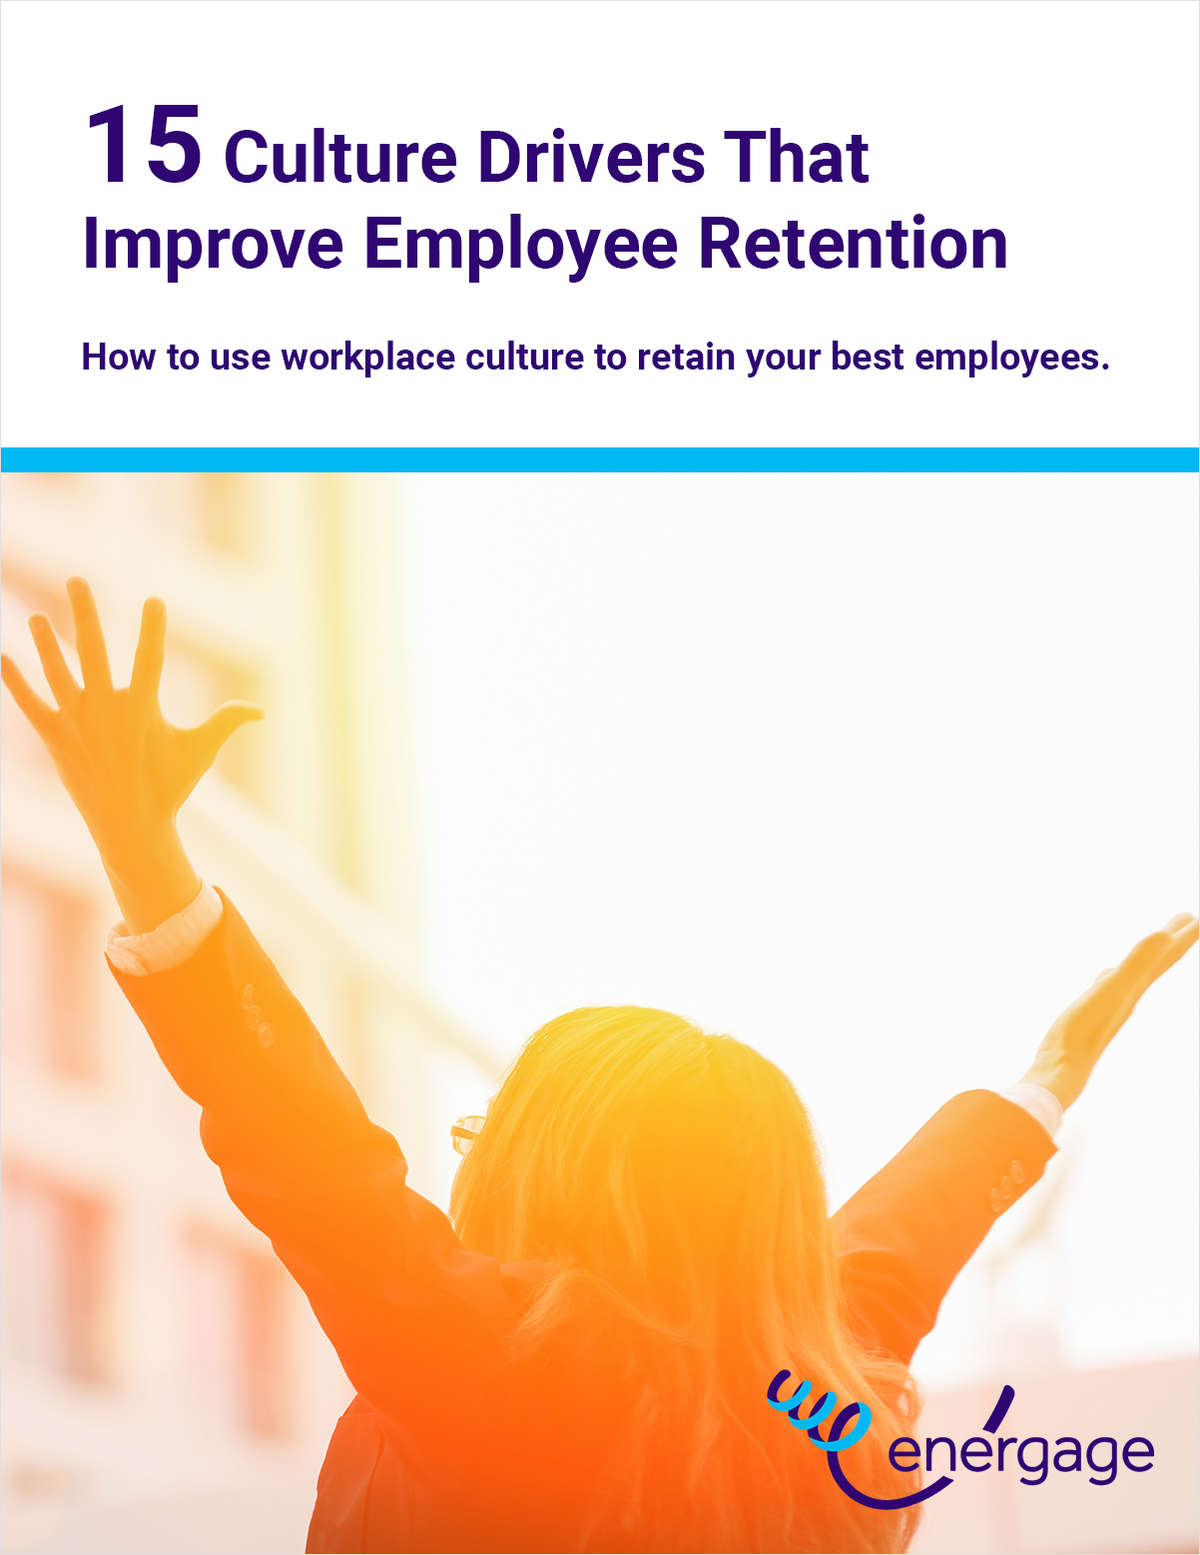 15 Culture Drivers That Improve Employee Retention